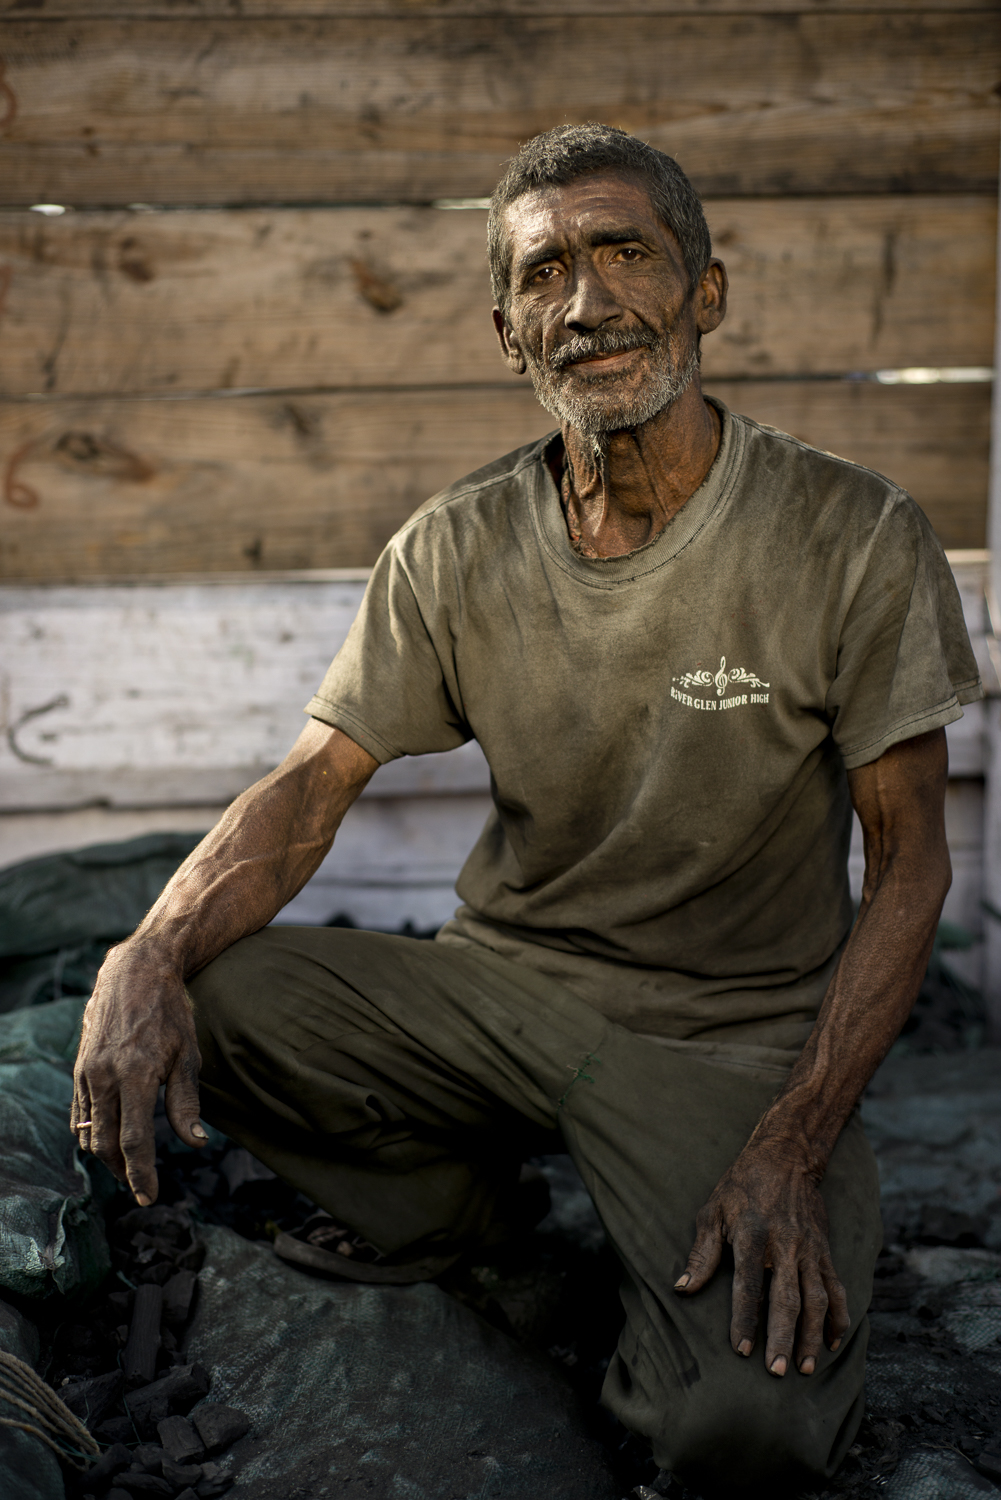 portraits-charcoal-workers-uae-jo-kearney-photography-video-travel-photography-migrants-migrant-workers-dhows.jpg